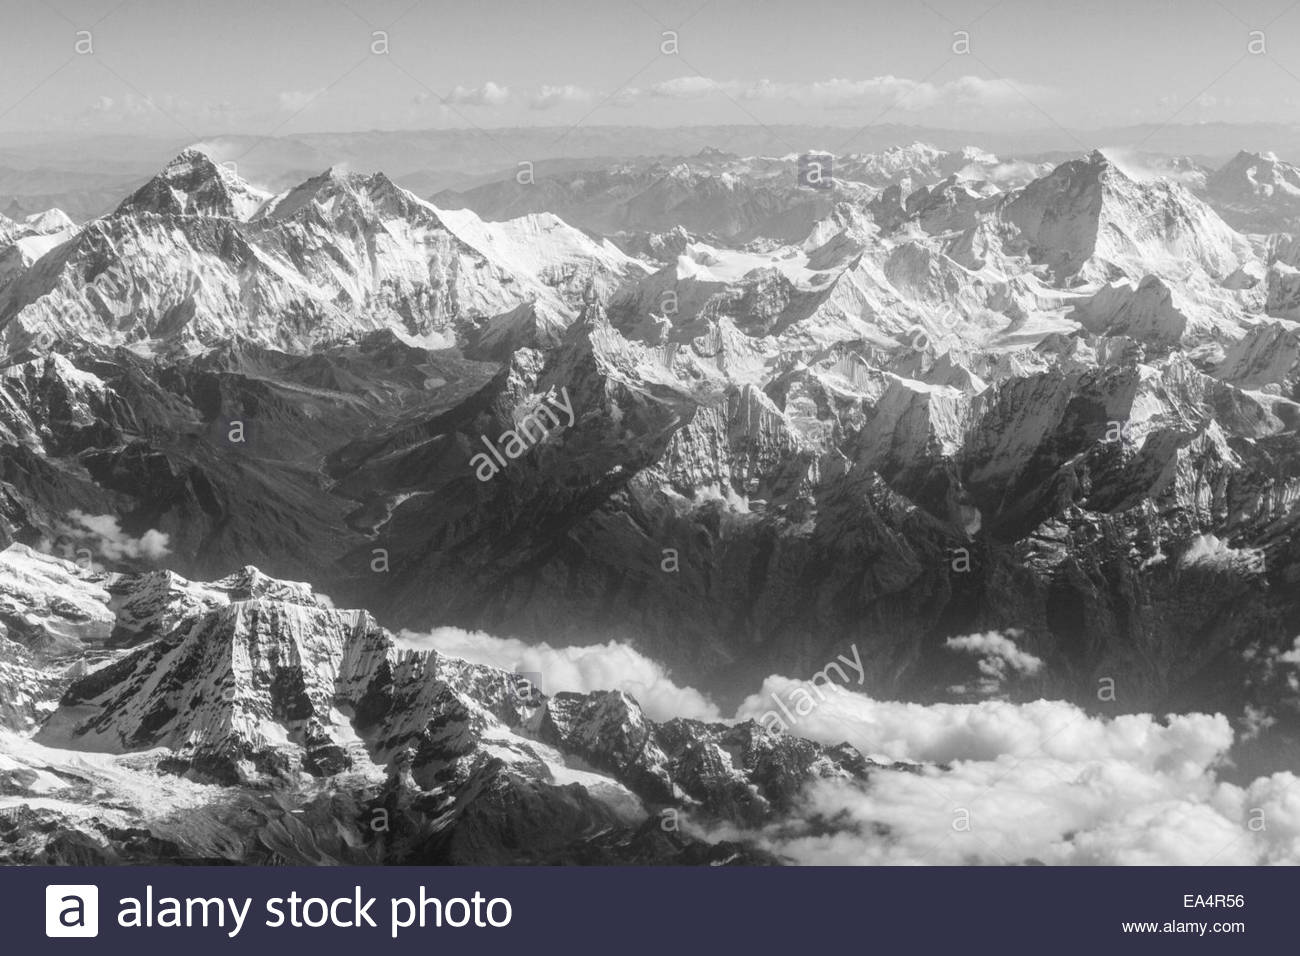 Aerial View of Mount Everest and Surround Himalayan Peaks - Solukhumbu Region - Nepal - Stock Image